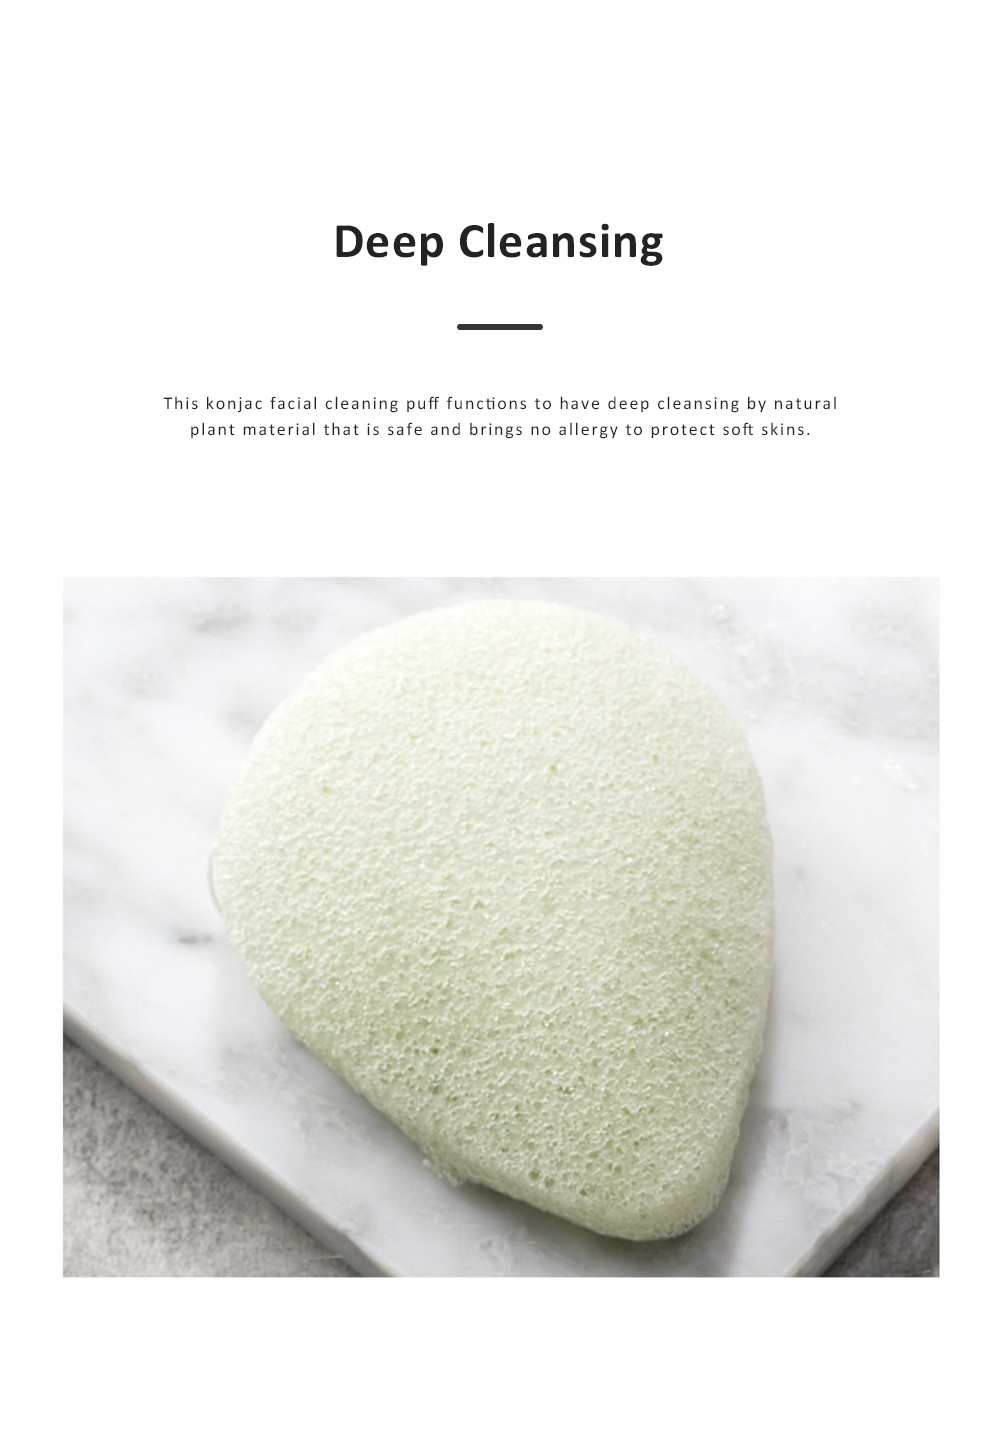 Jordan & Judy Konjac Sponge Facial Cleaning Puff for Face Deep Cleaning Facial Puff Konjac Facial Clean Buffer Sponge 4